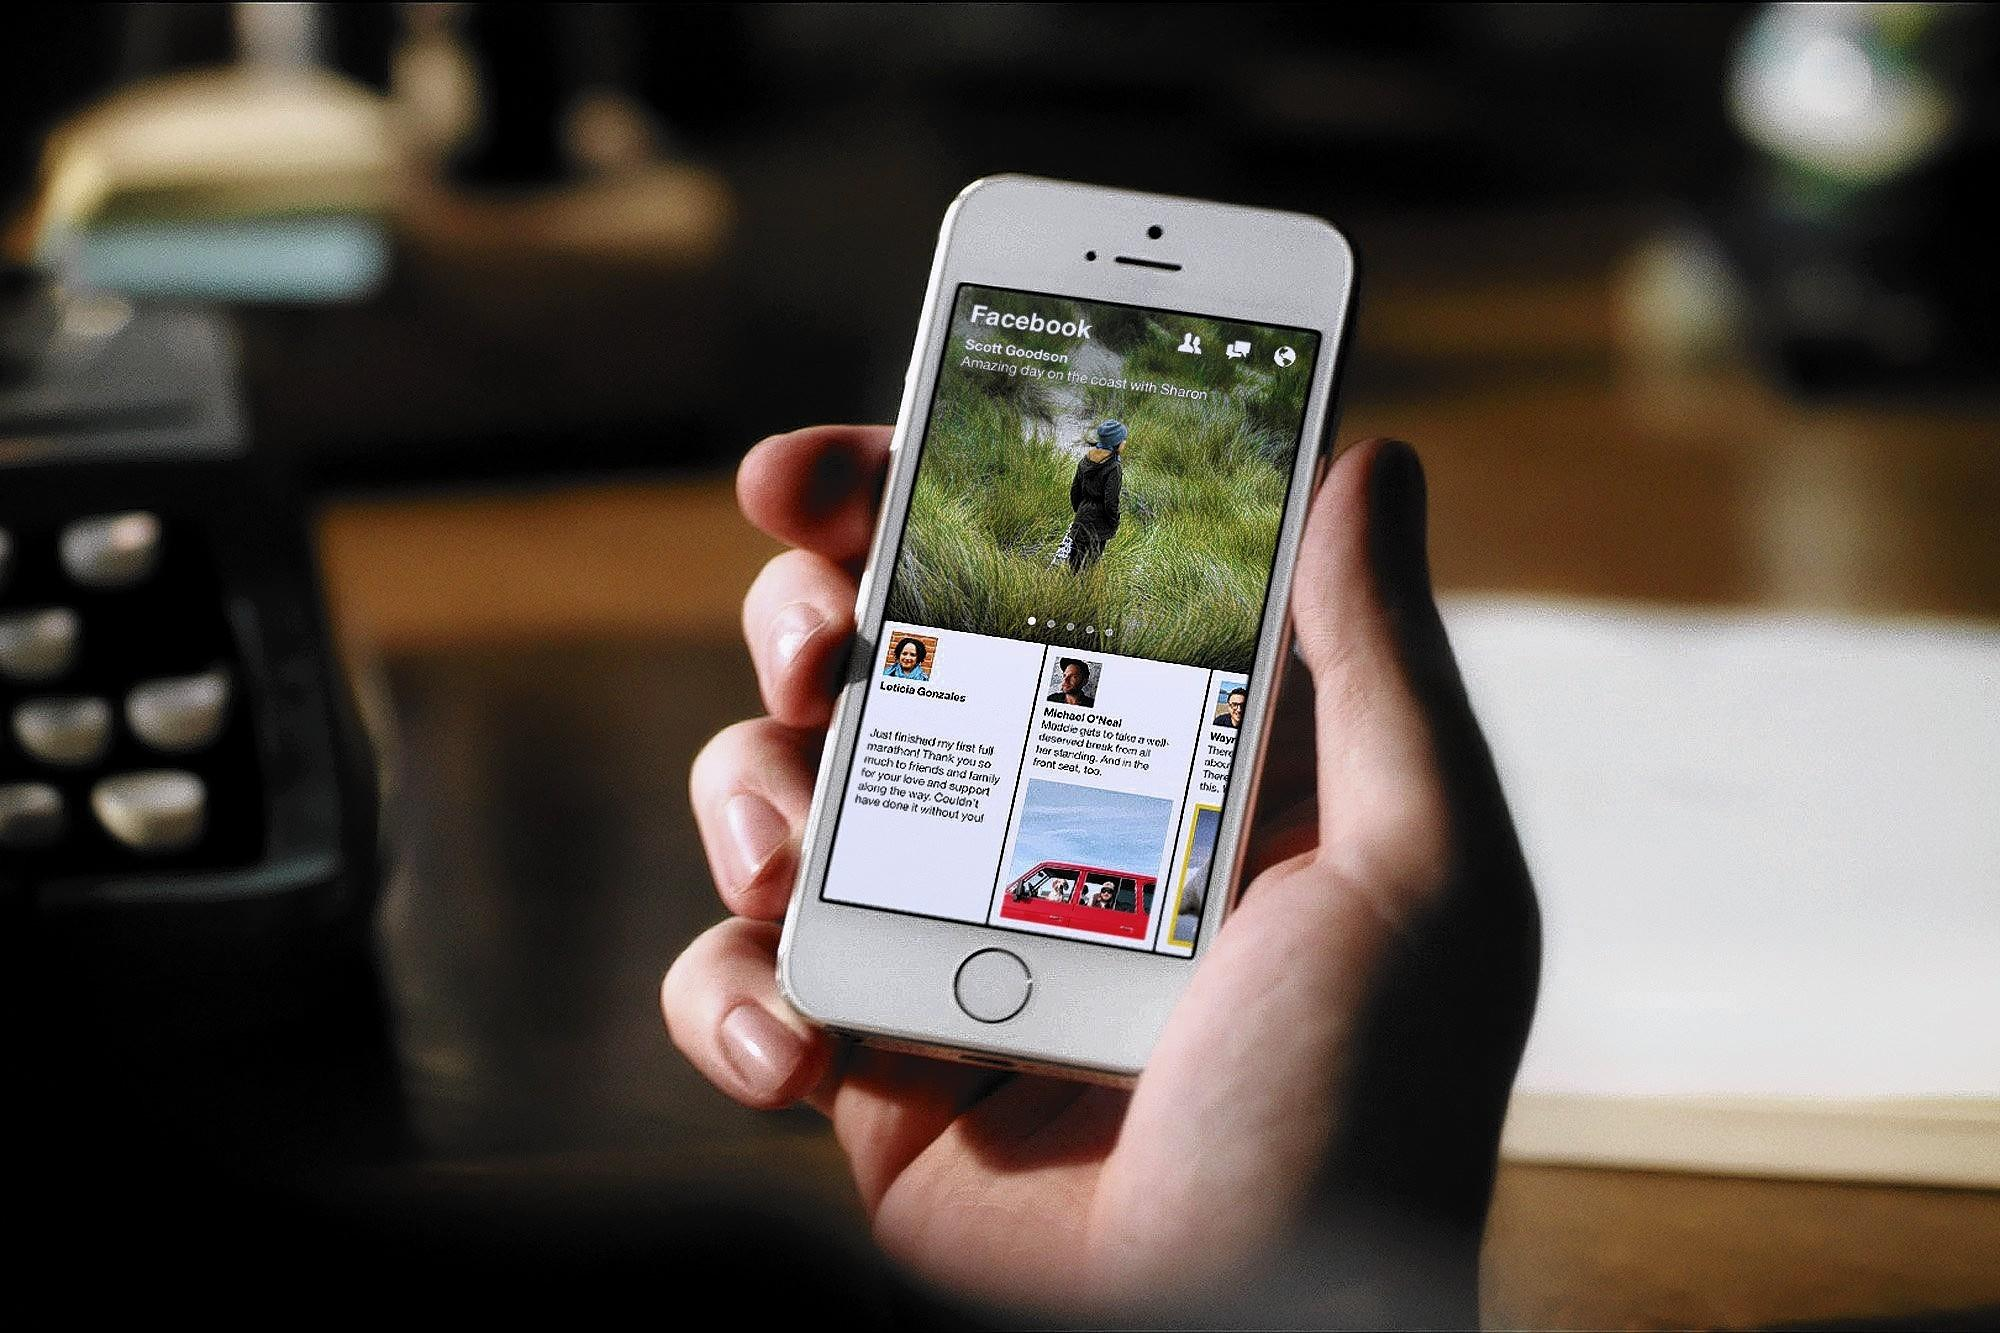 Facebook's mobile news reader, Paper, is used on an iPhone. For now, Facebook wants to establish Paper as the go-to news reader, taking on Google News, Twitter, mobile app Flipboard and LinkedIn's Pulse.